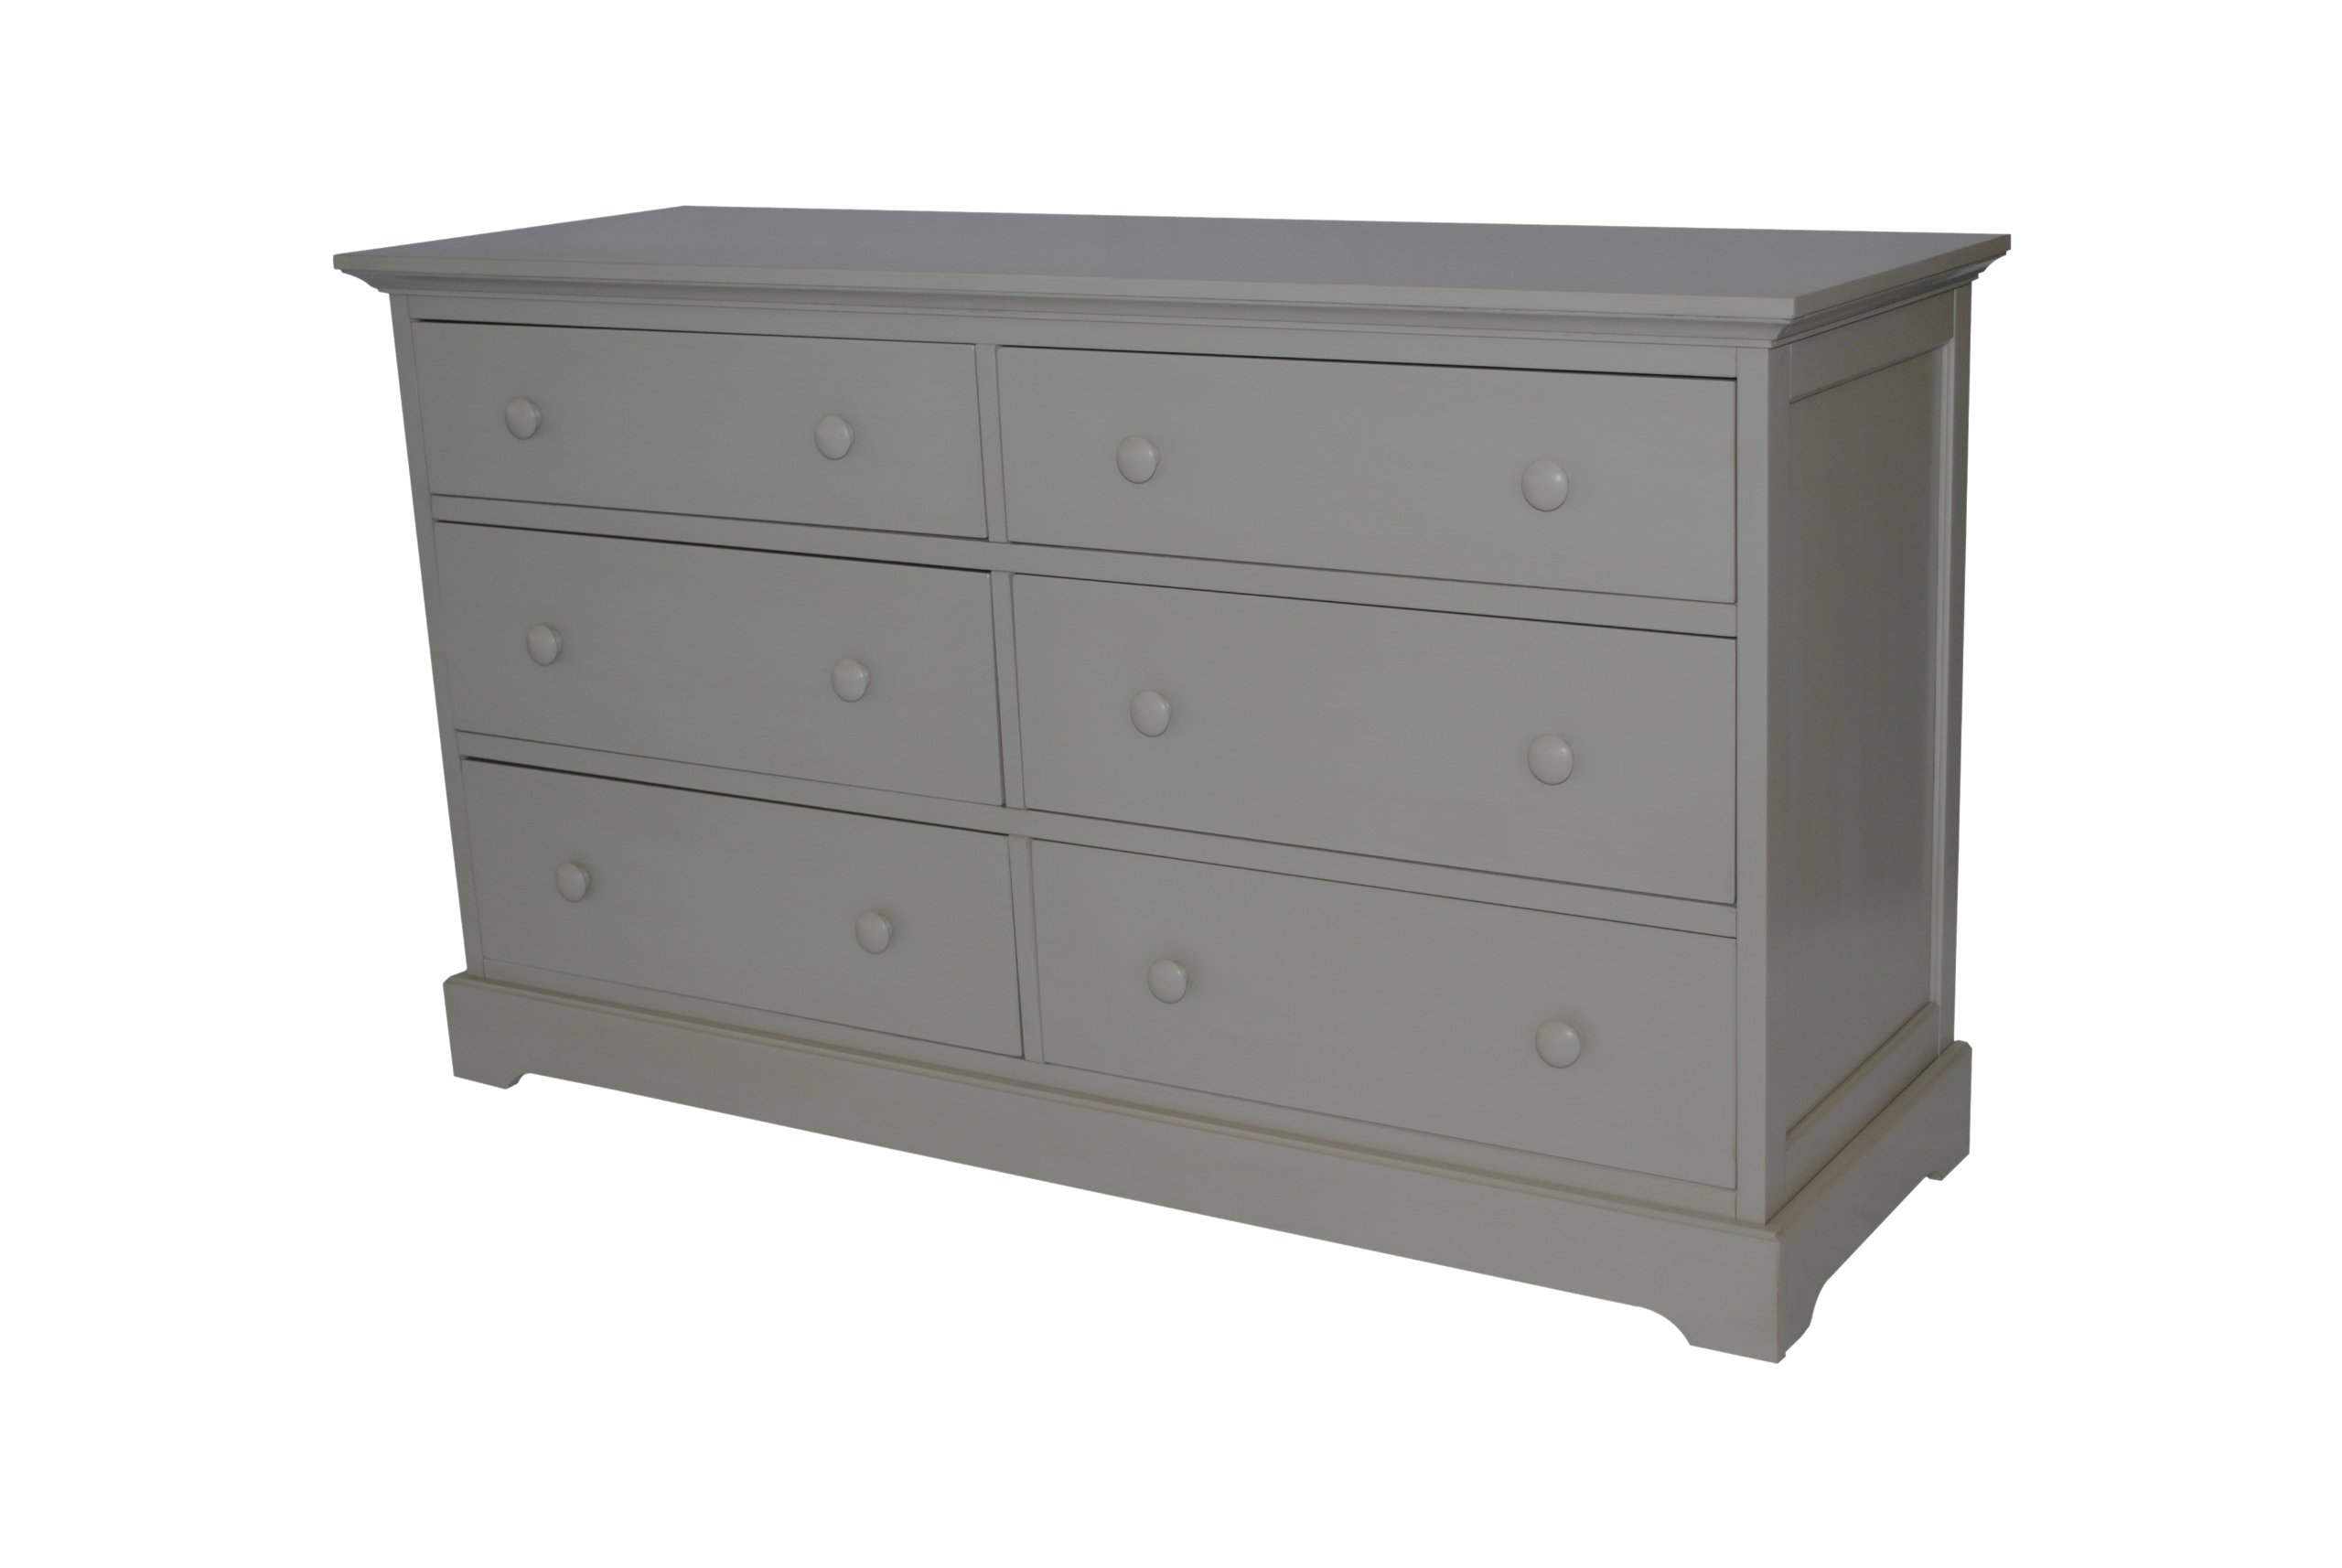 white dresser ikea an mandal to positive alternative of drawer